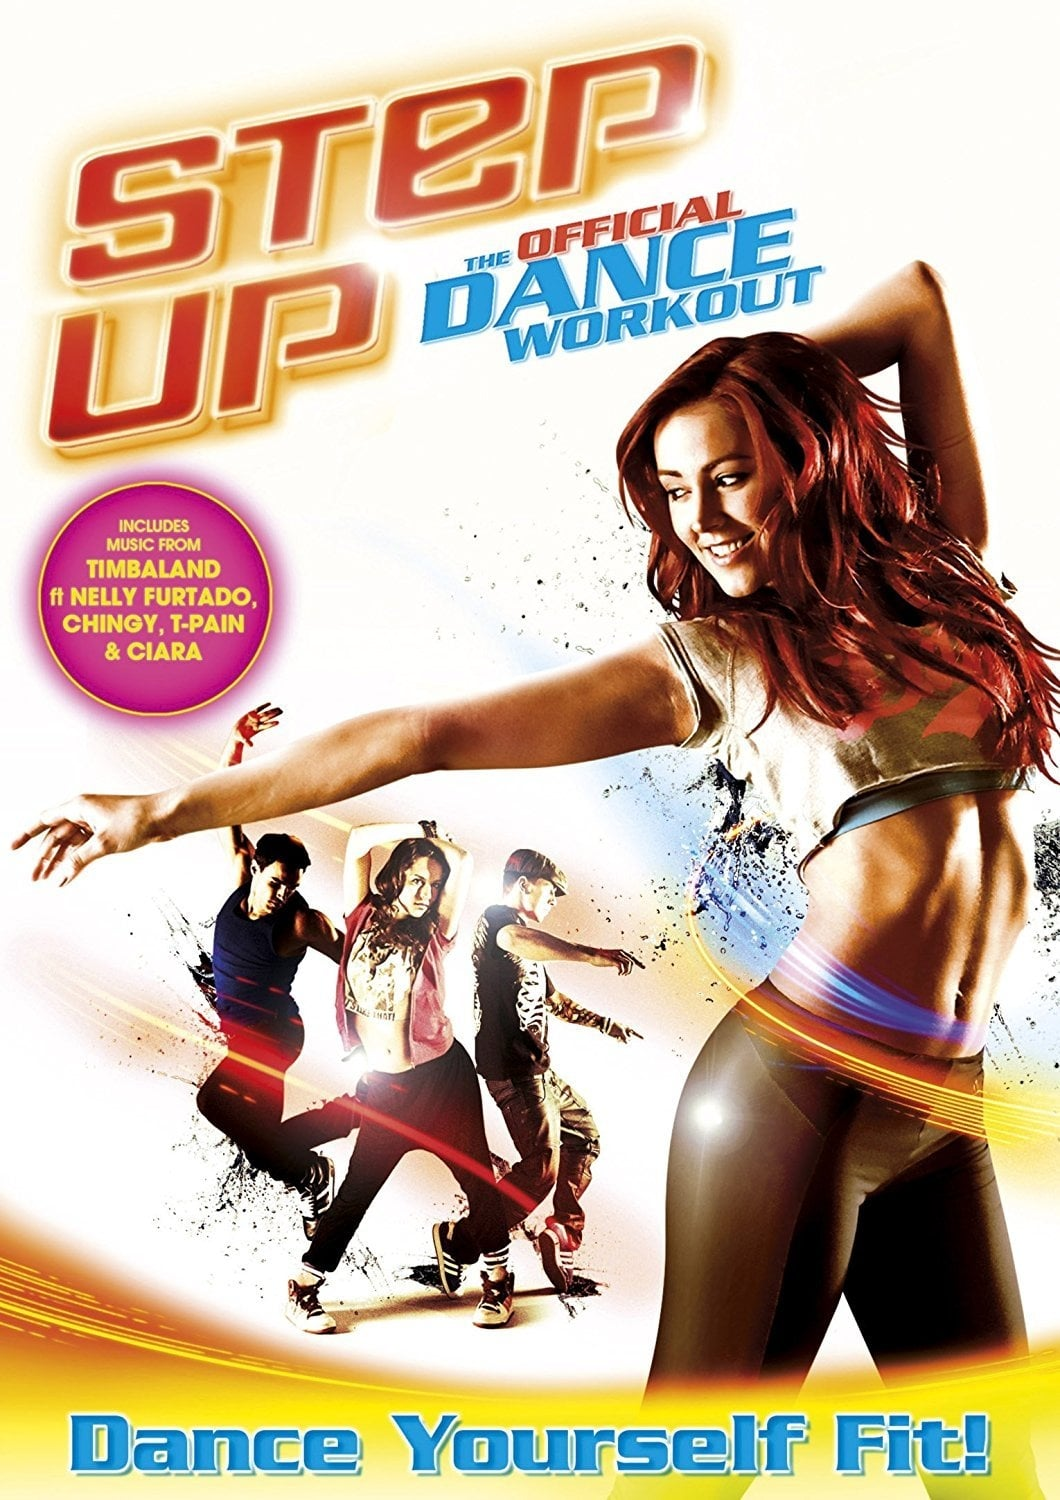 Step Up: The Official Dance Workout (2010)